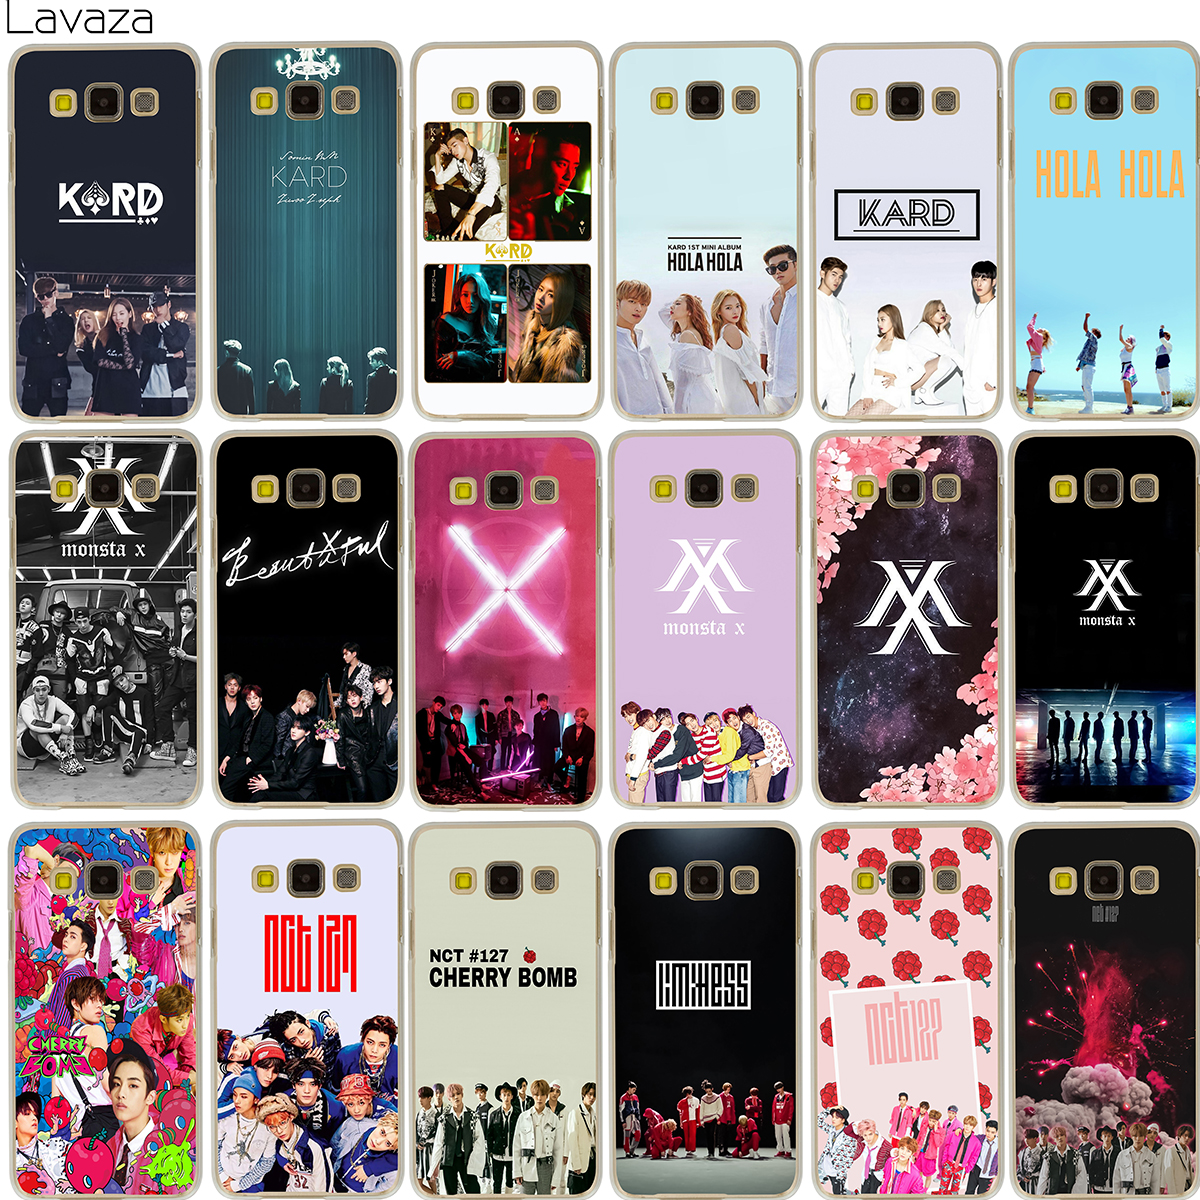 Lavaza KPOP K.A.R.D MONSTA X NCT 127 Case for Samsung Galaxy Note 8 A3 A5 A8 J3 J5 J7 2016 2017 2018 ...